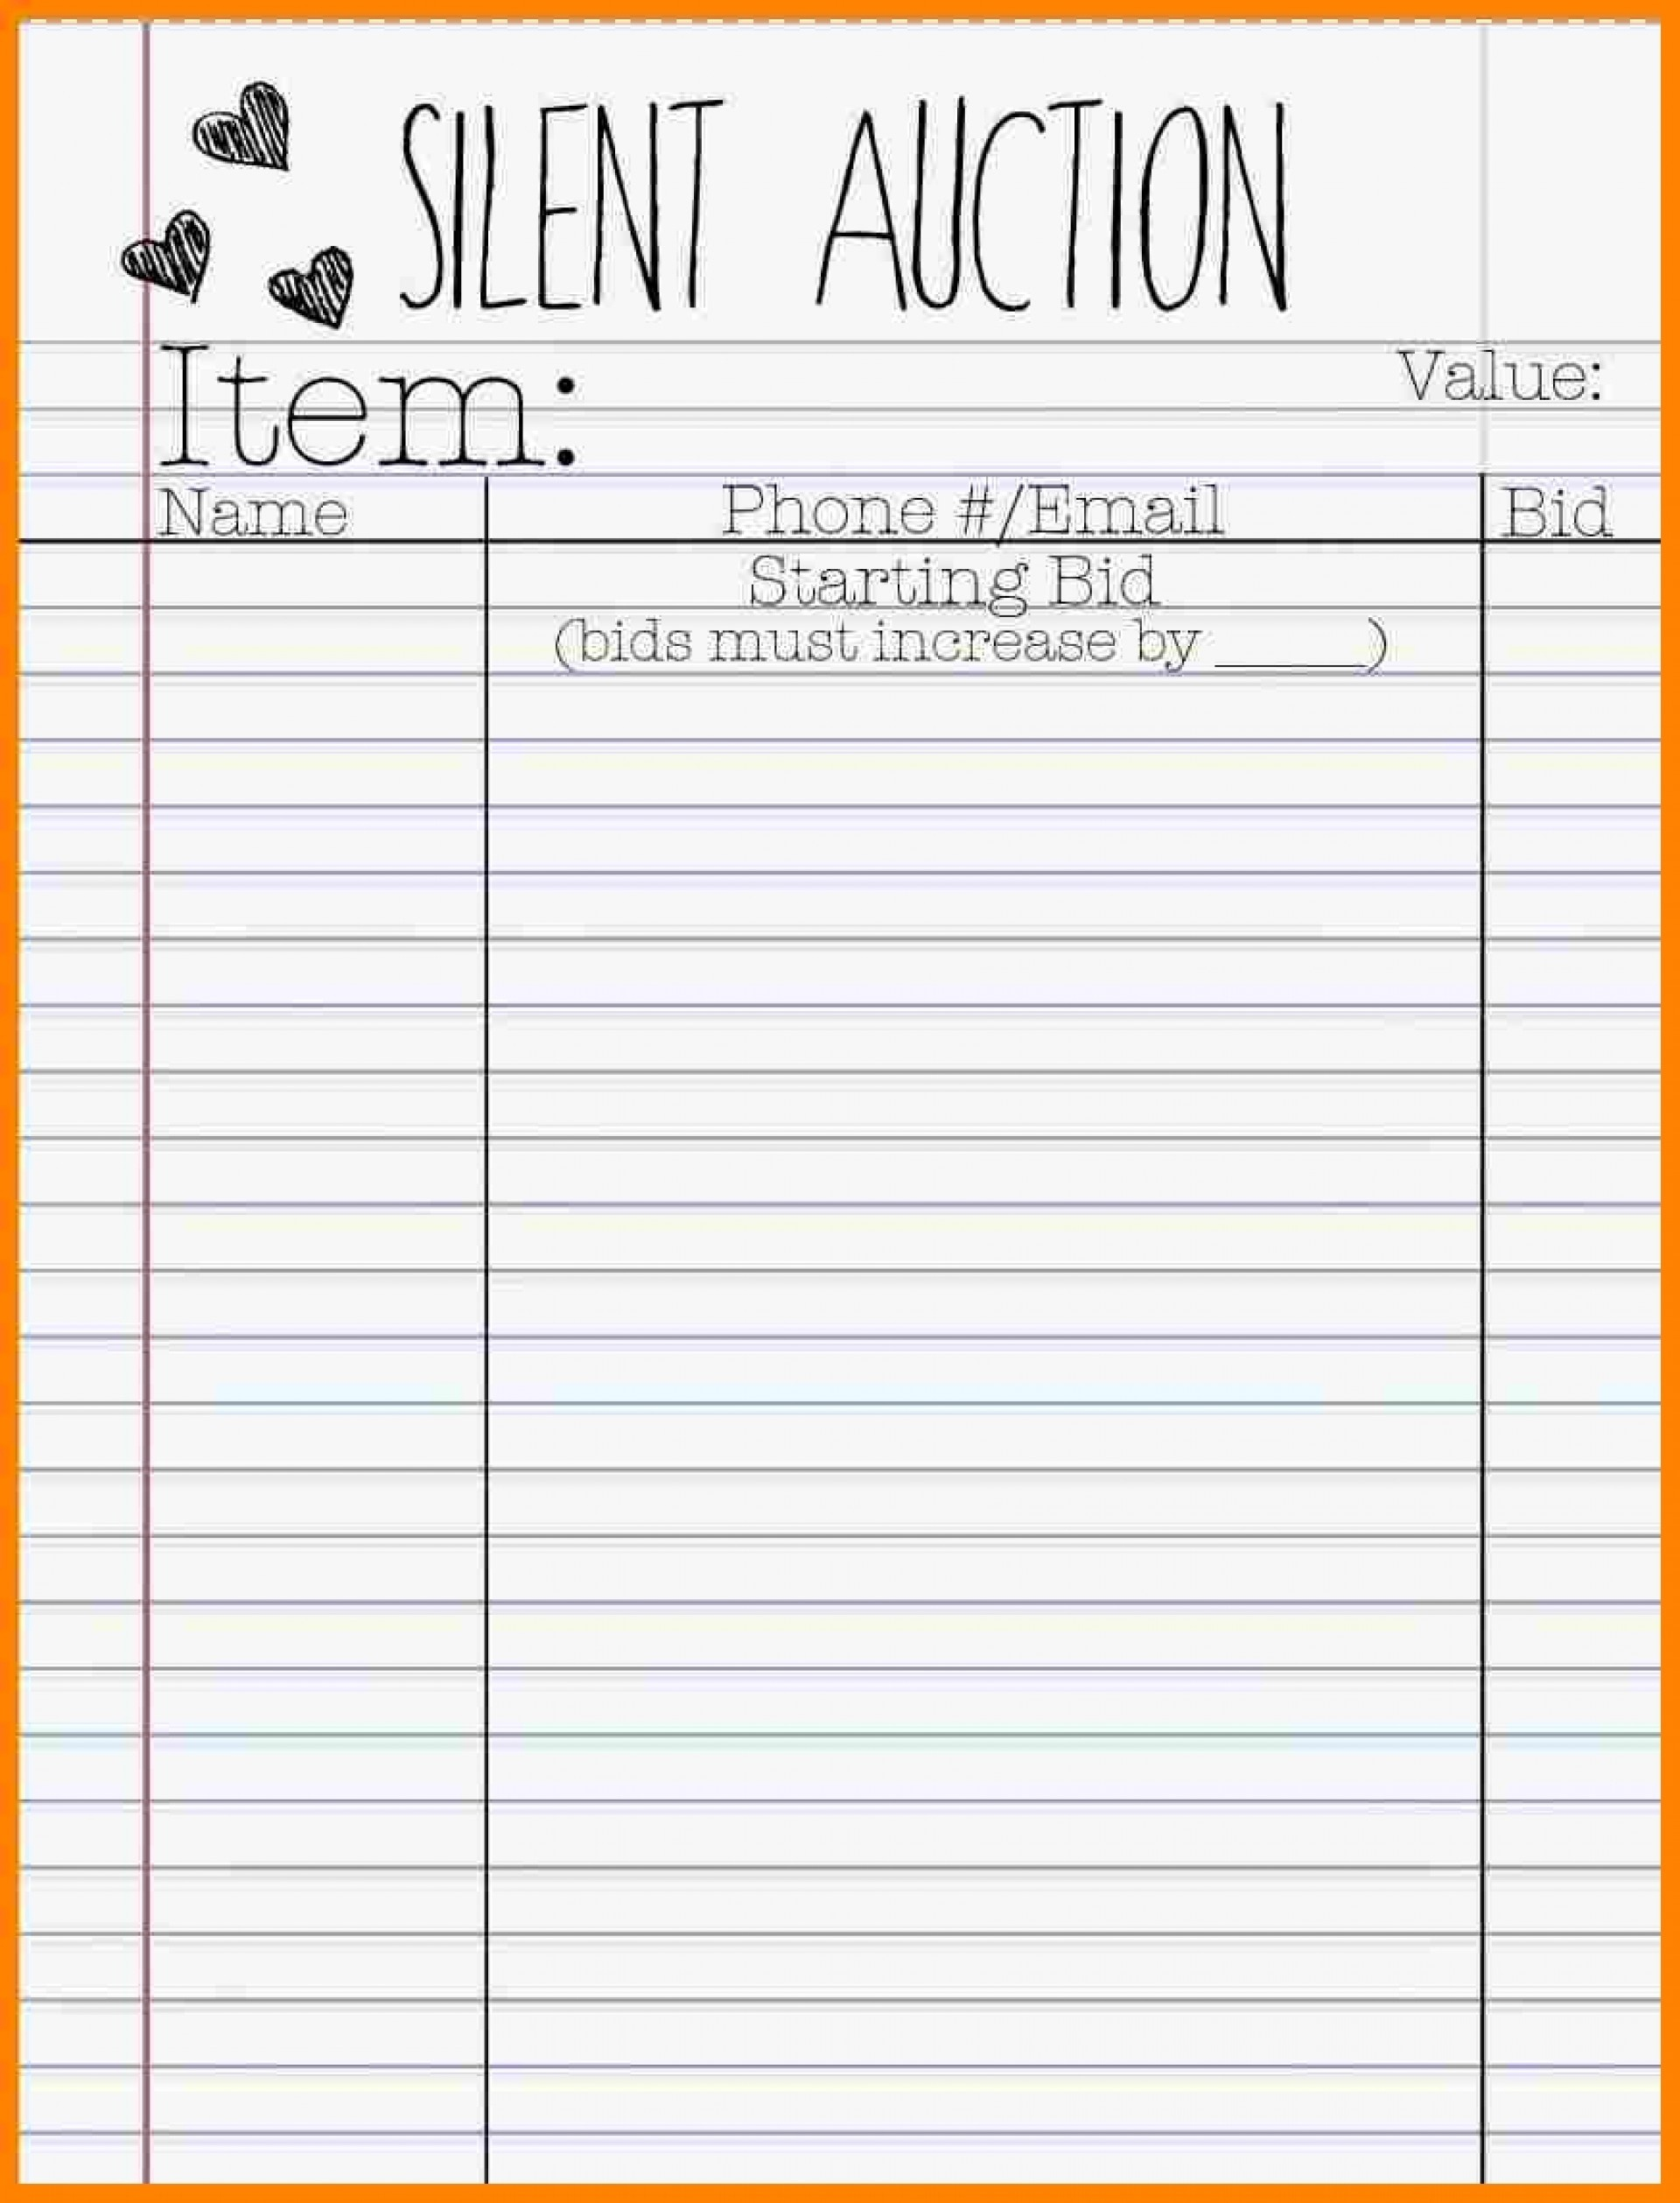 017 Silent Auction Bid Sheet Template Word 21442 Best Ideas - Free Printable Silent Auction Bid Sheets